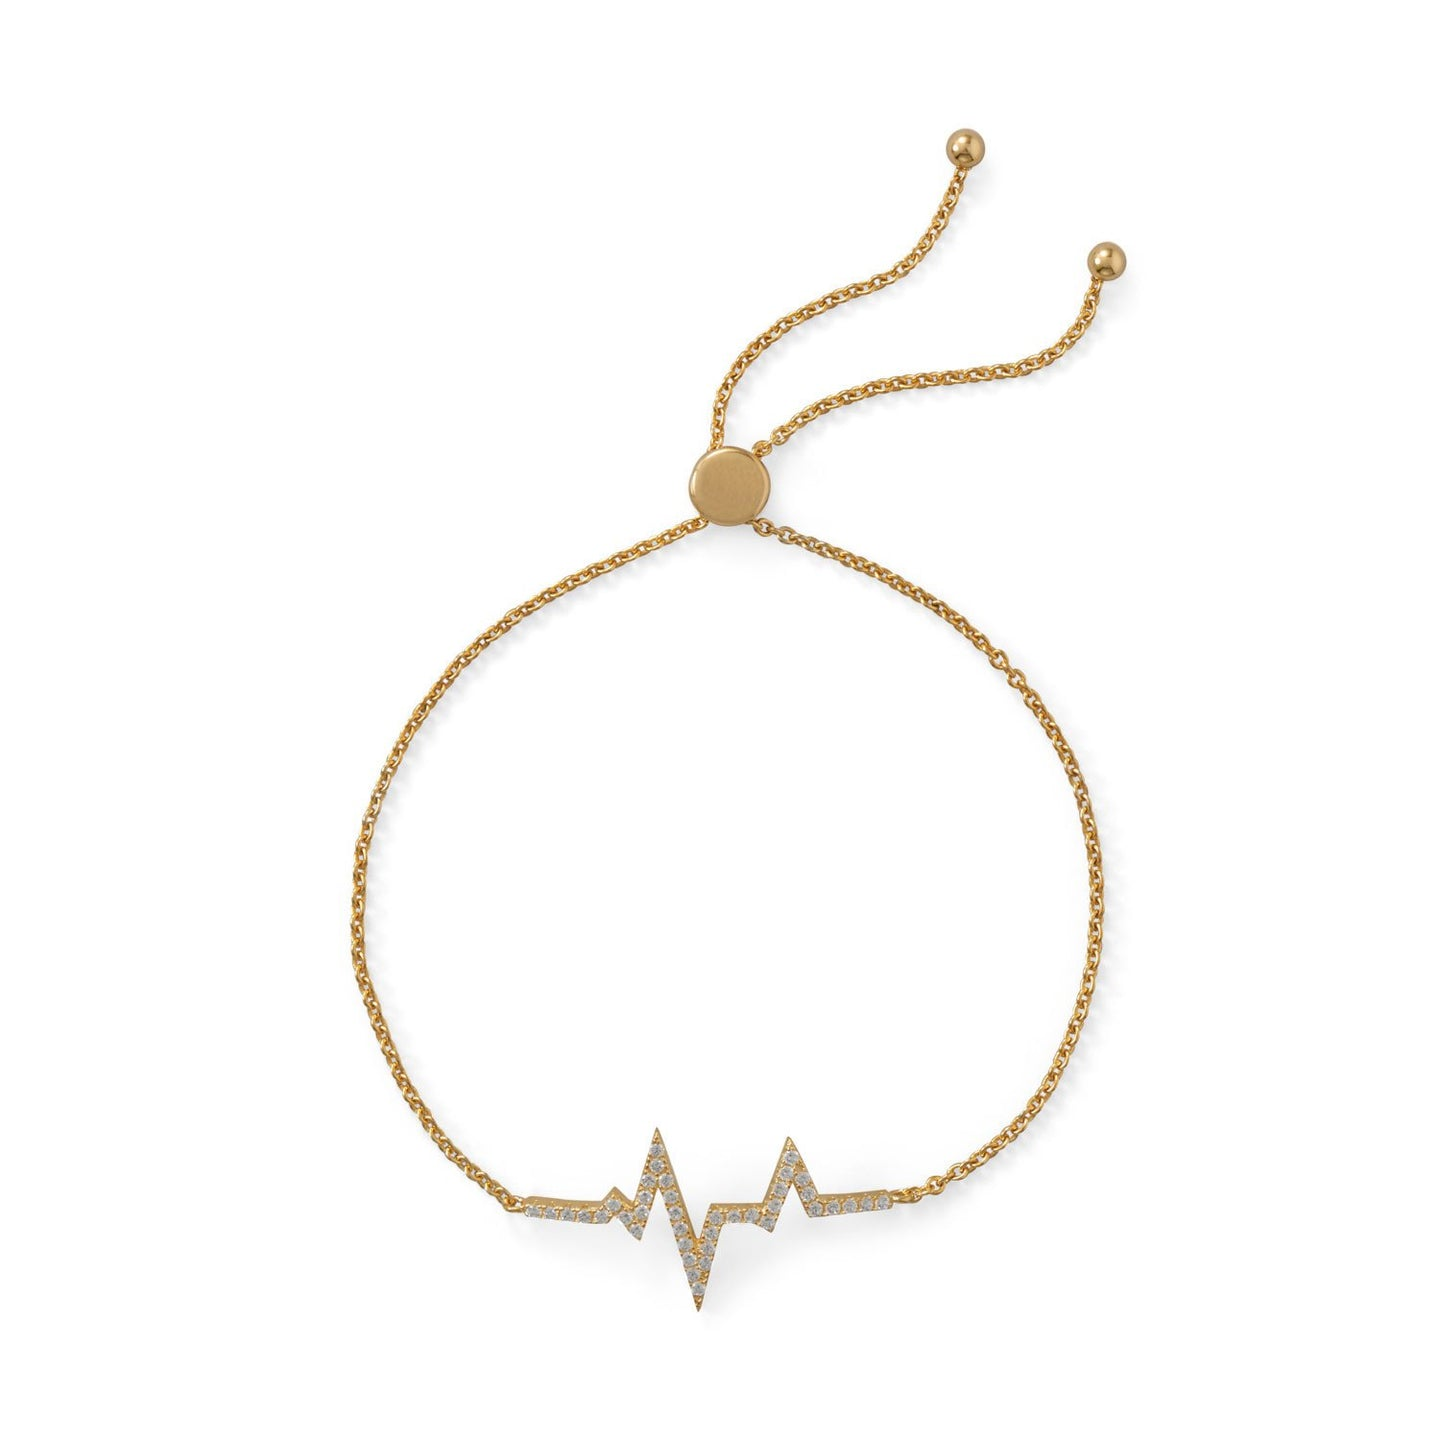 Gold Plated CZ Heartbeat Friendship Bolo Bracelet - the-southern-magnolia-too